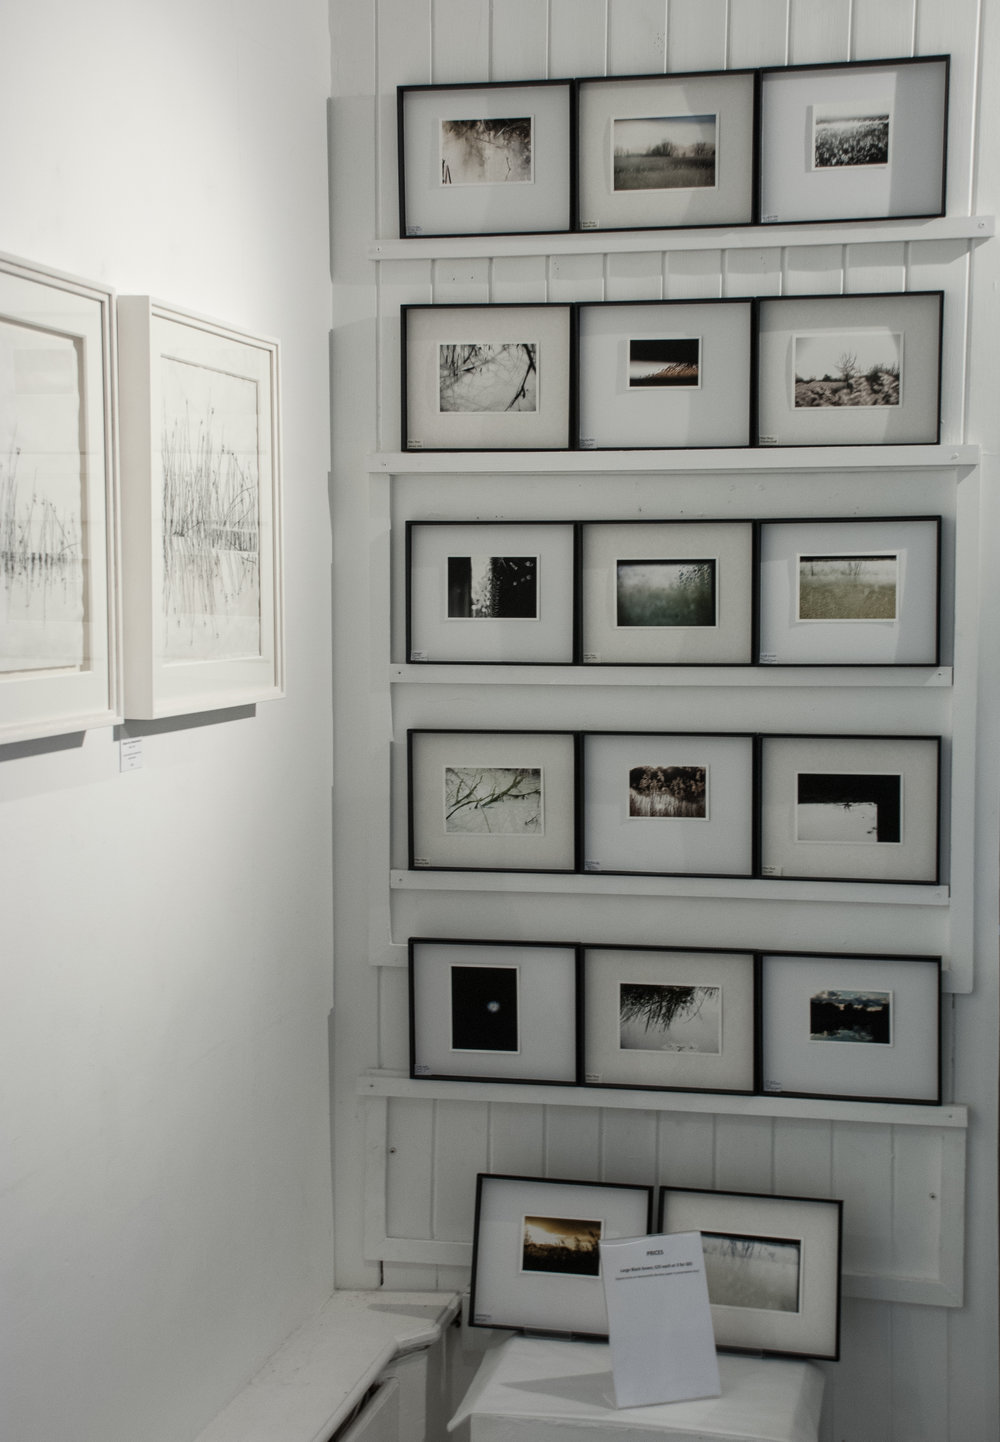 Exhibition view Helen Terry April 2018-4.jpg